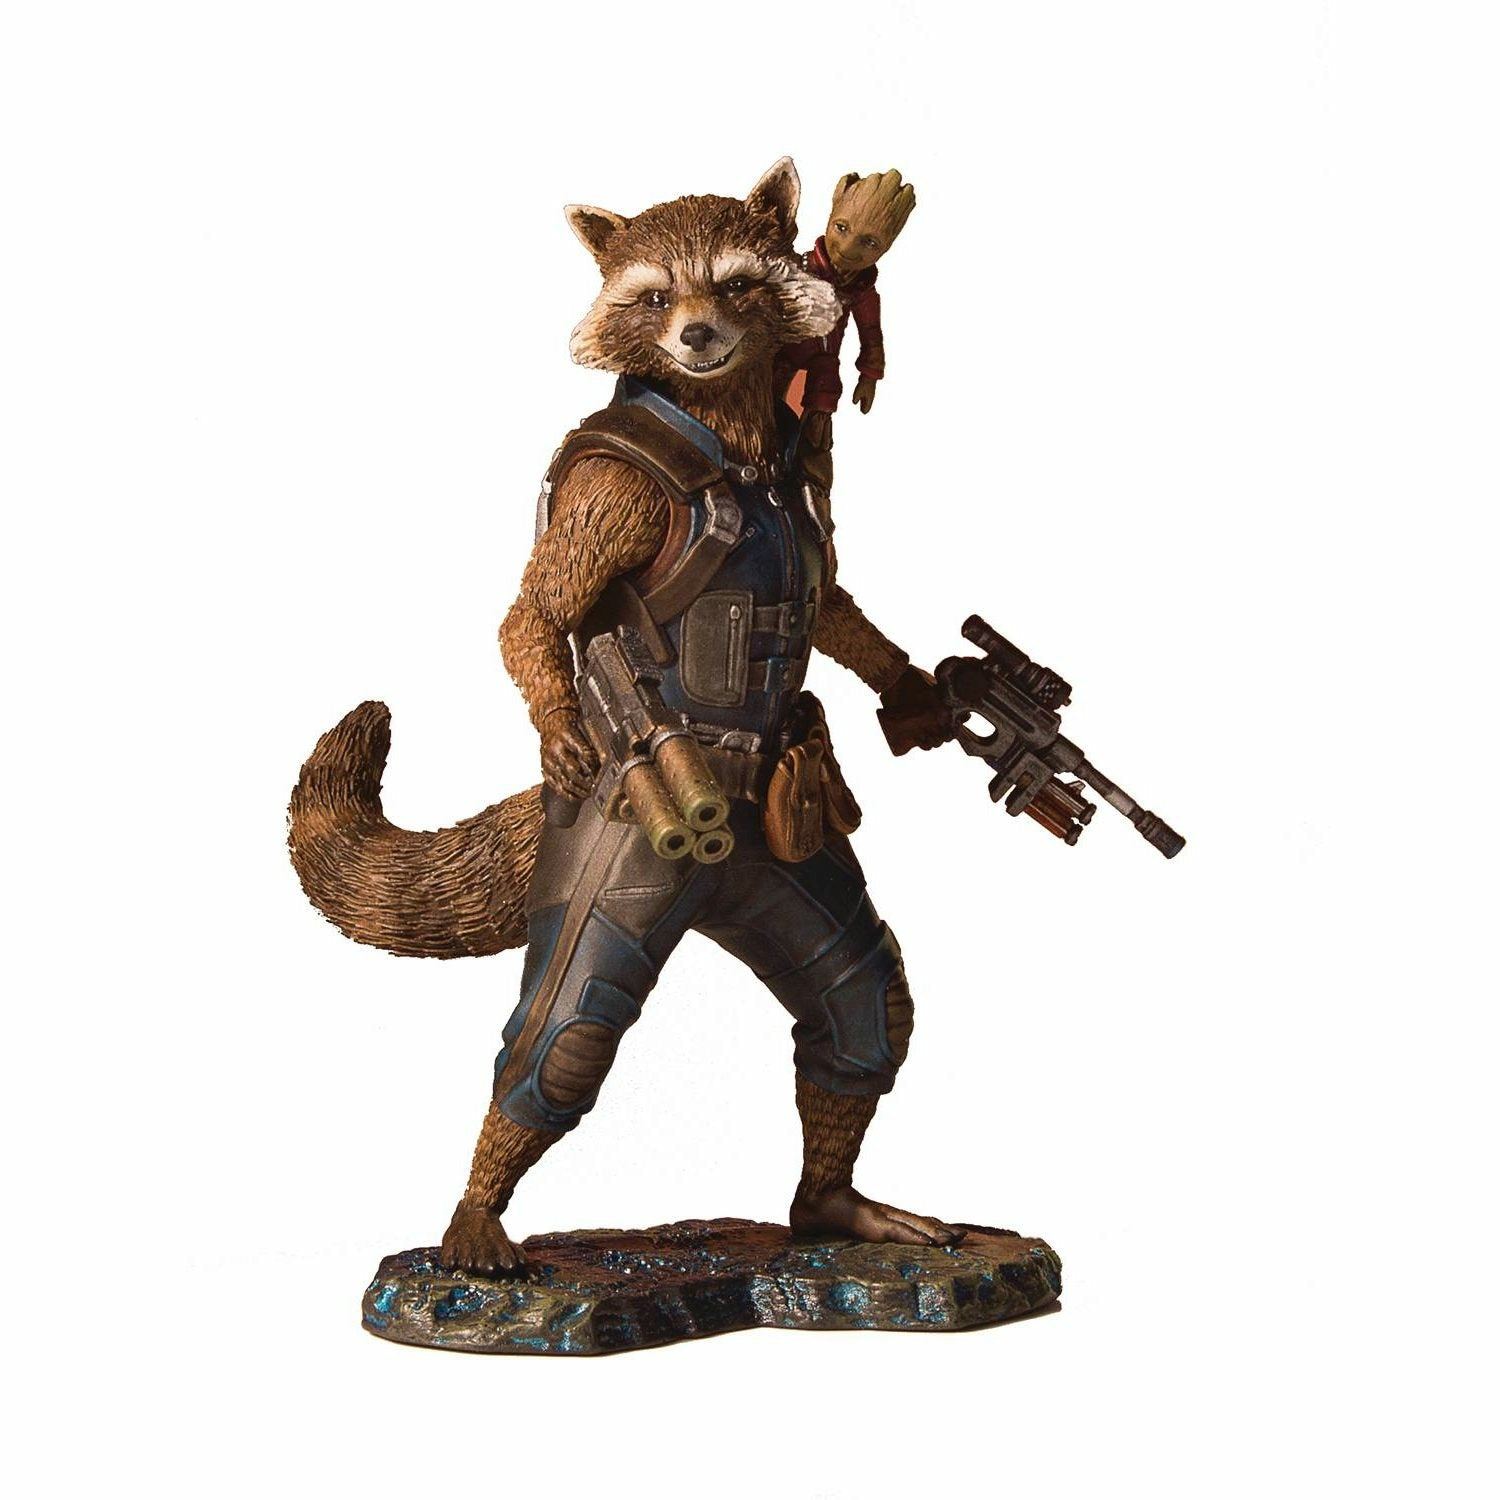 Marvel Collectors Gallery Guardians of the Galaxy 2 Rocket & Groot Statue